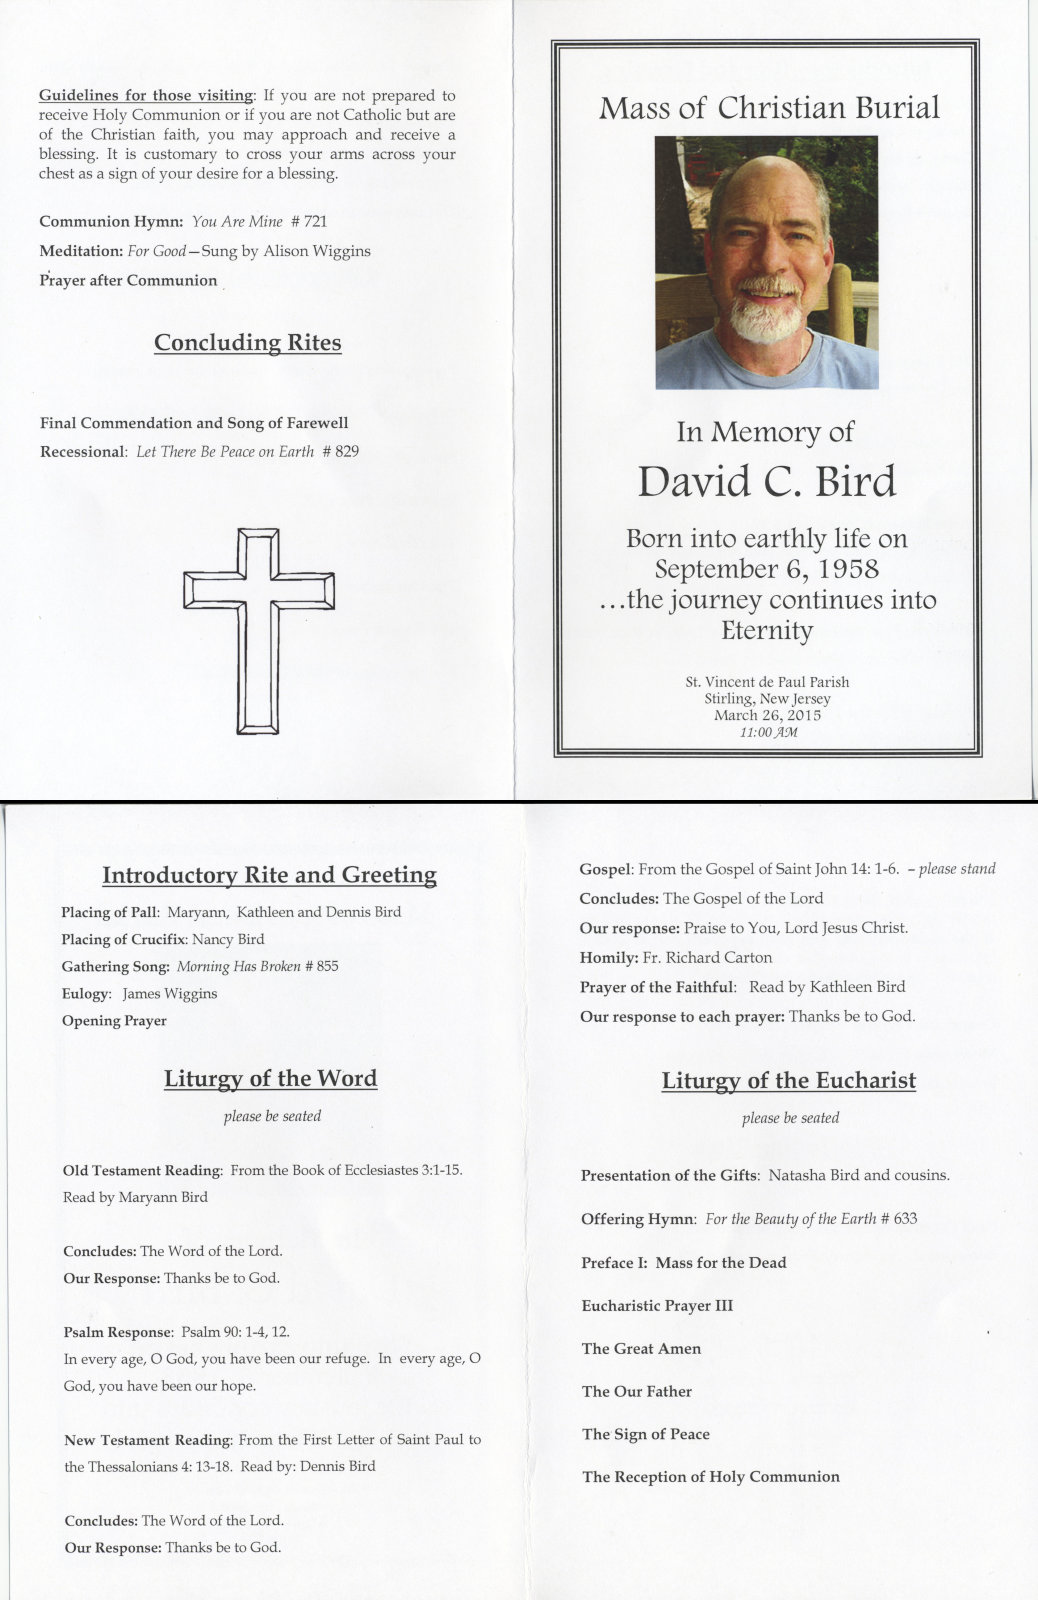 Funeral Mass Booklet